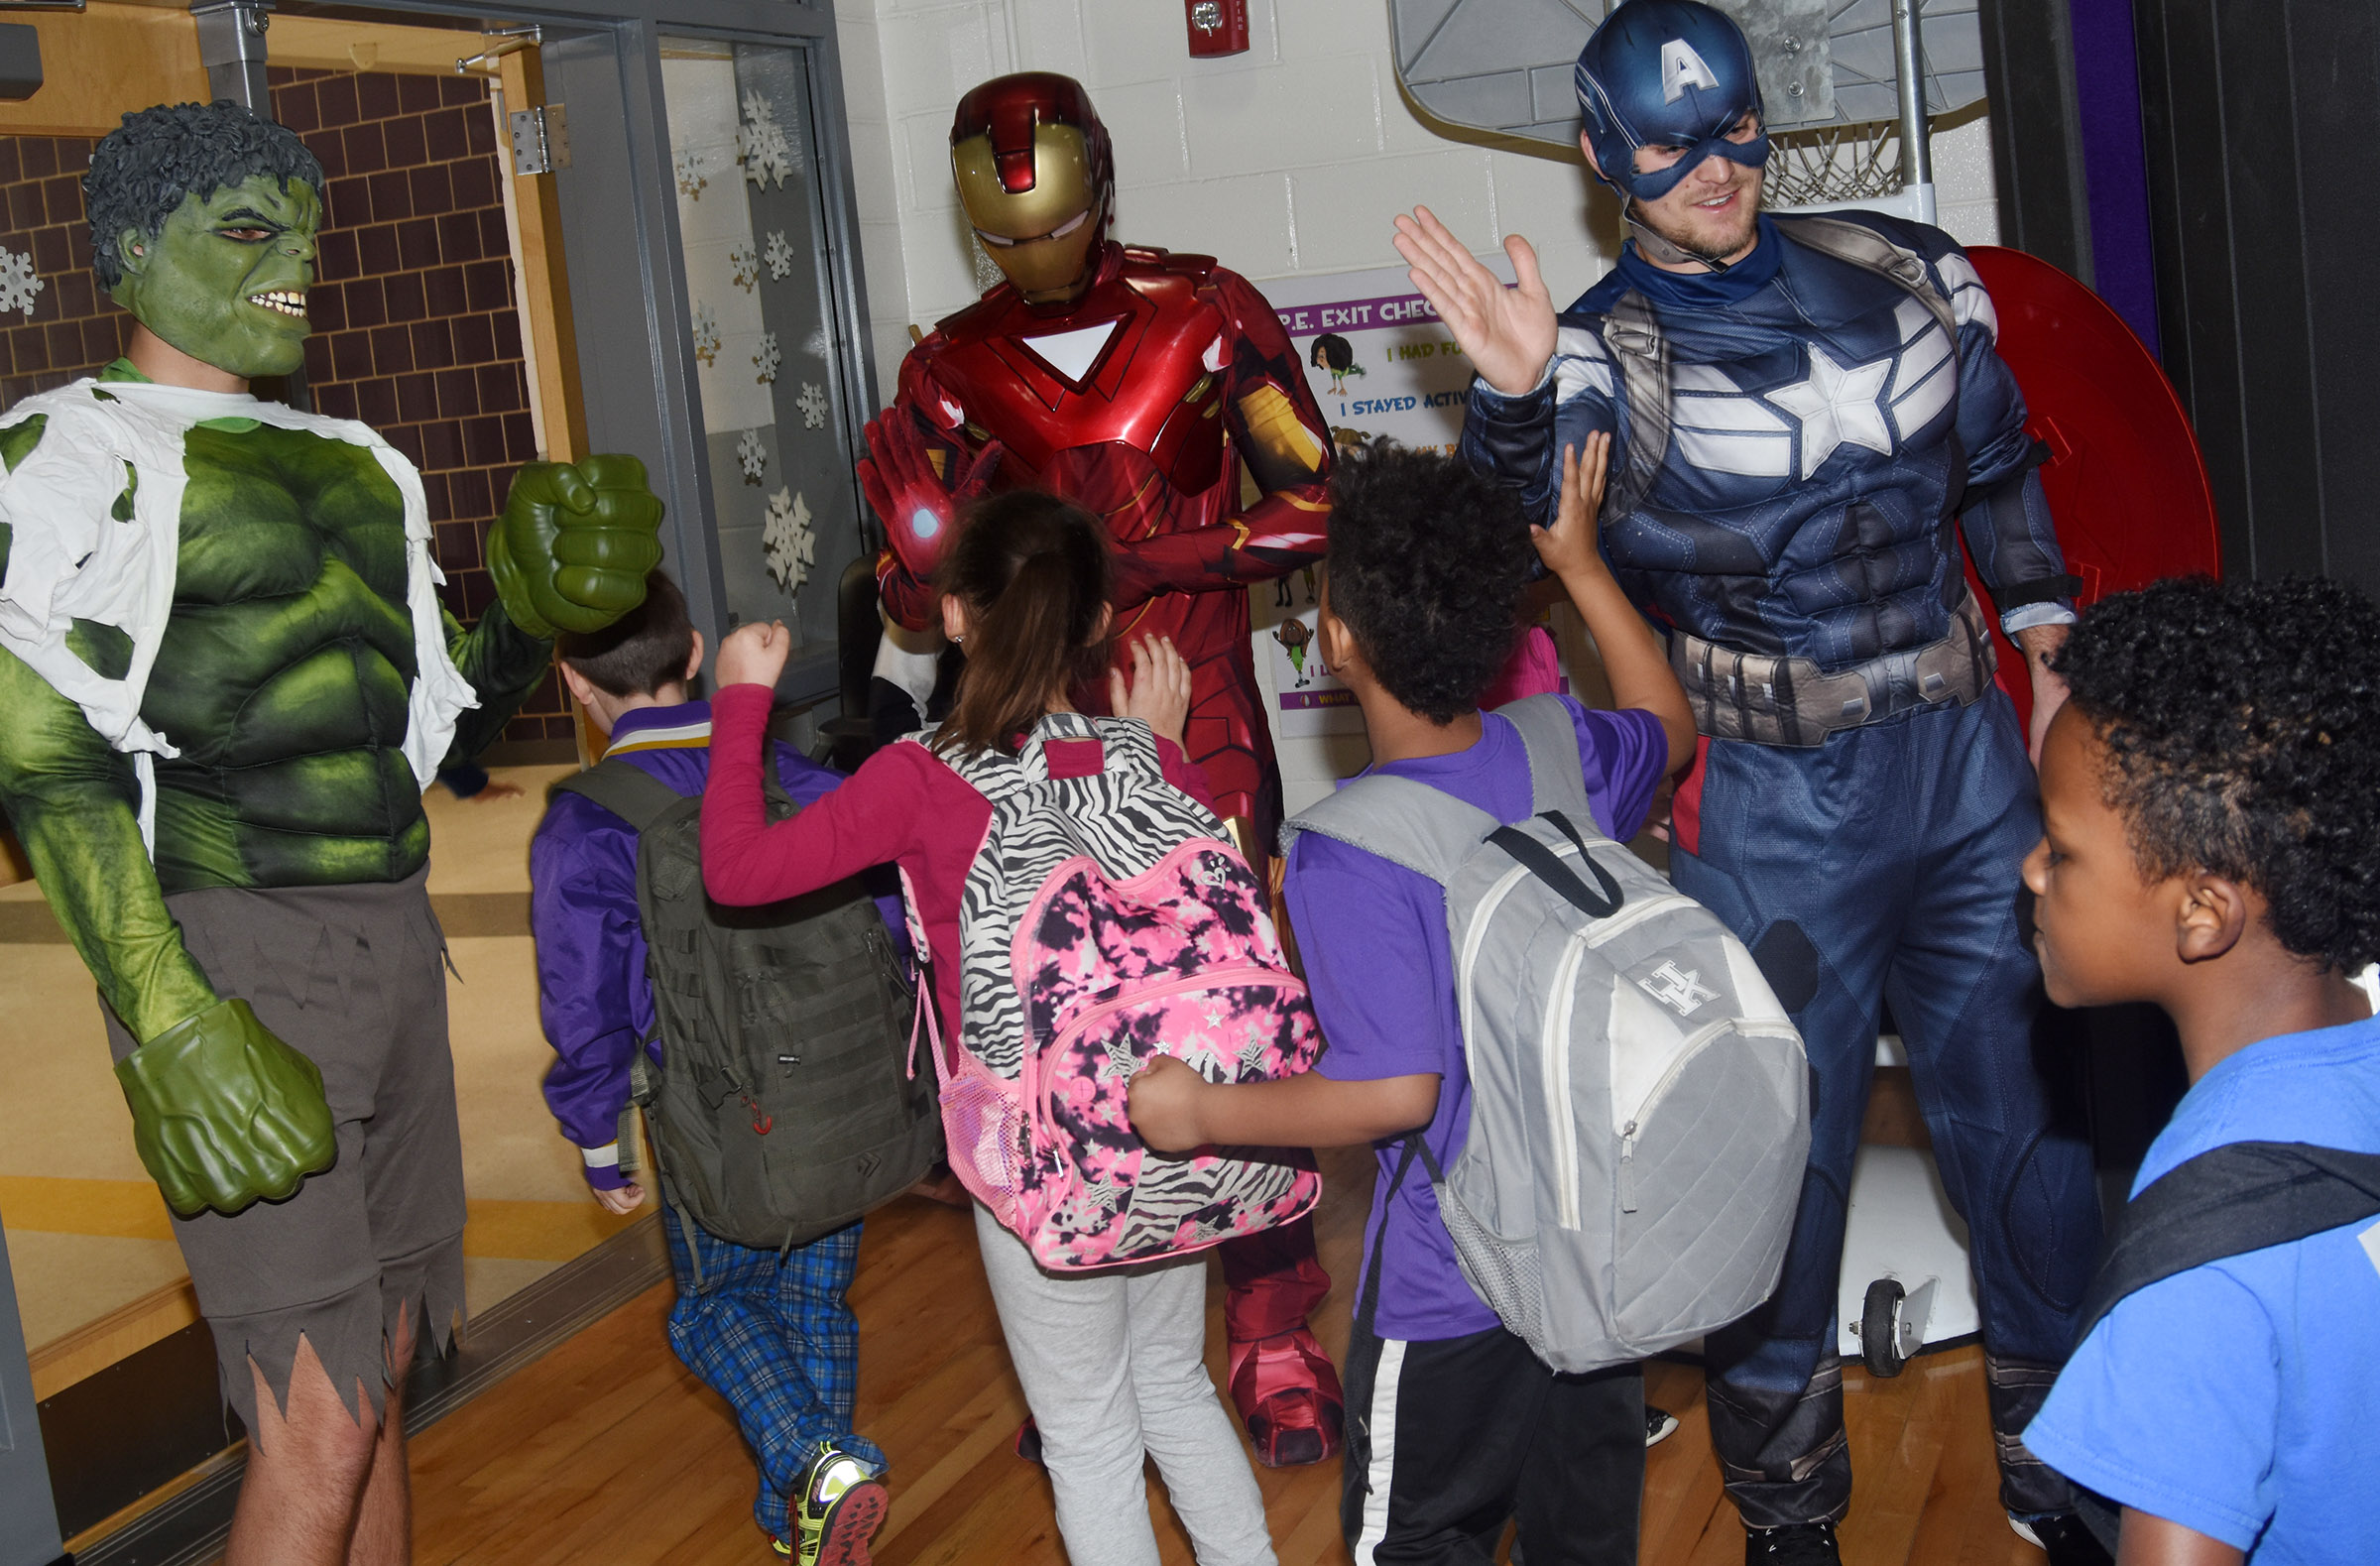 From left, Hulk, Iron Man and Captain America give high-fives.